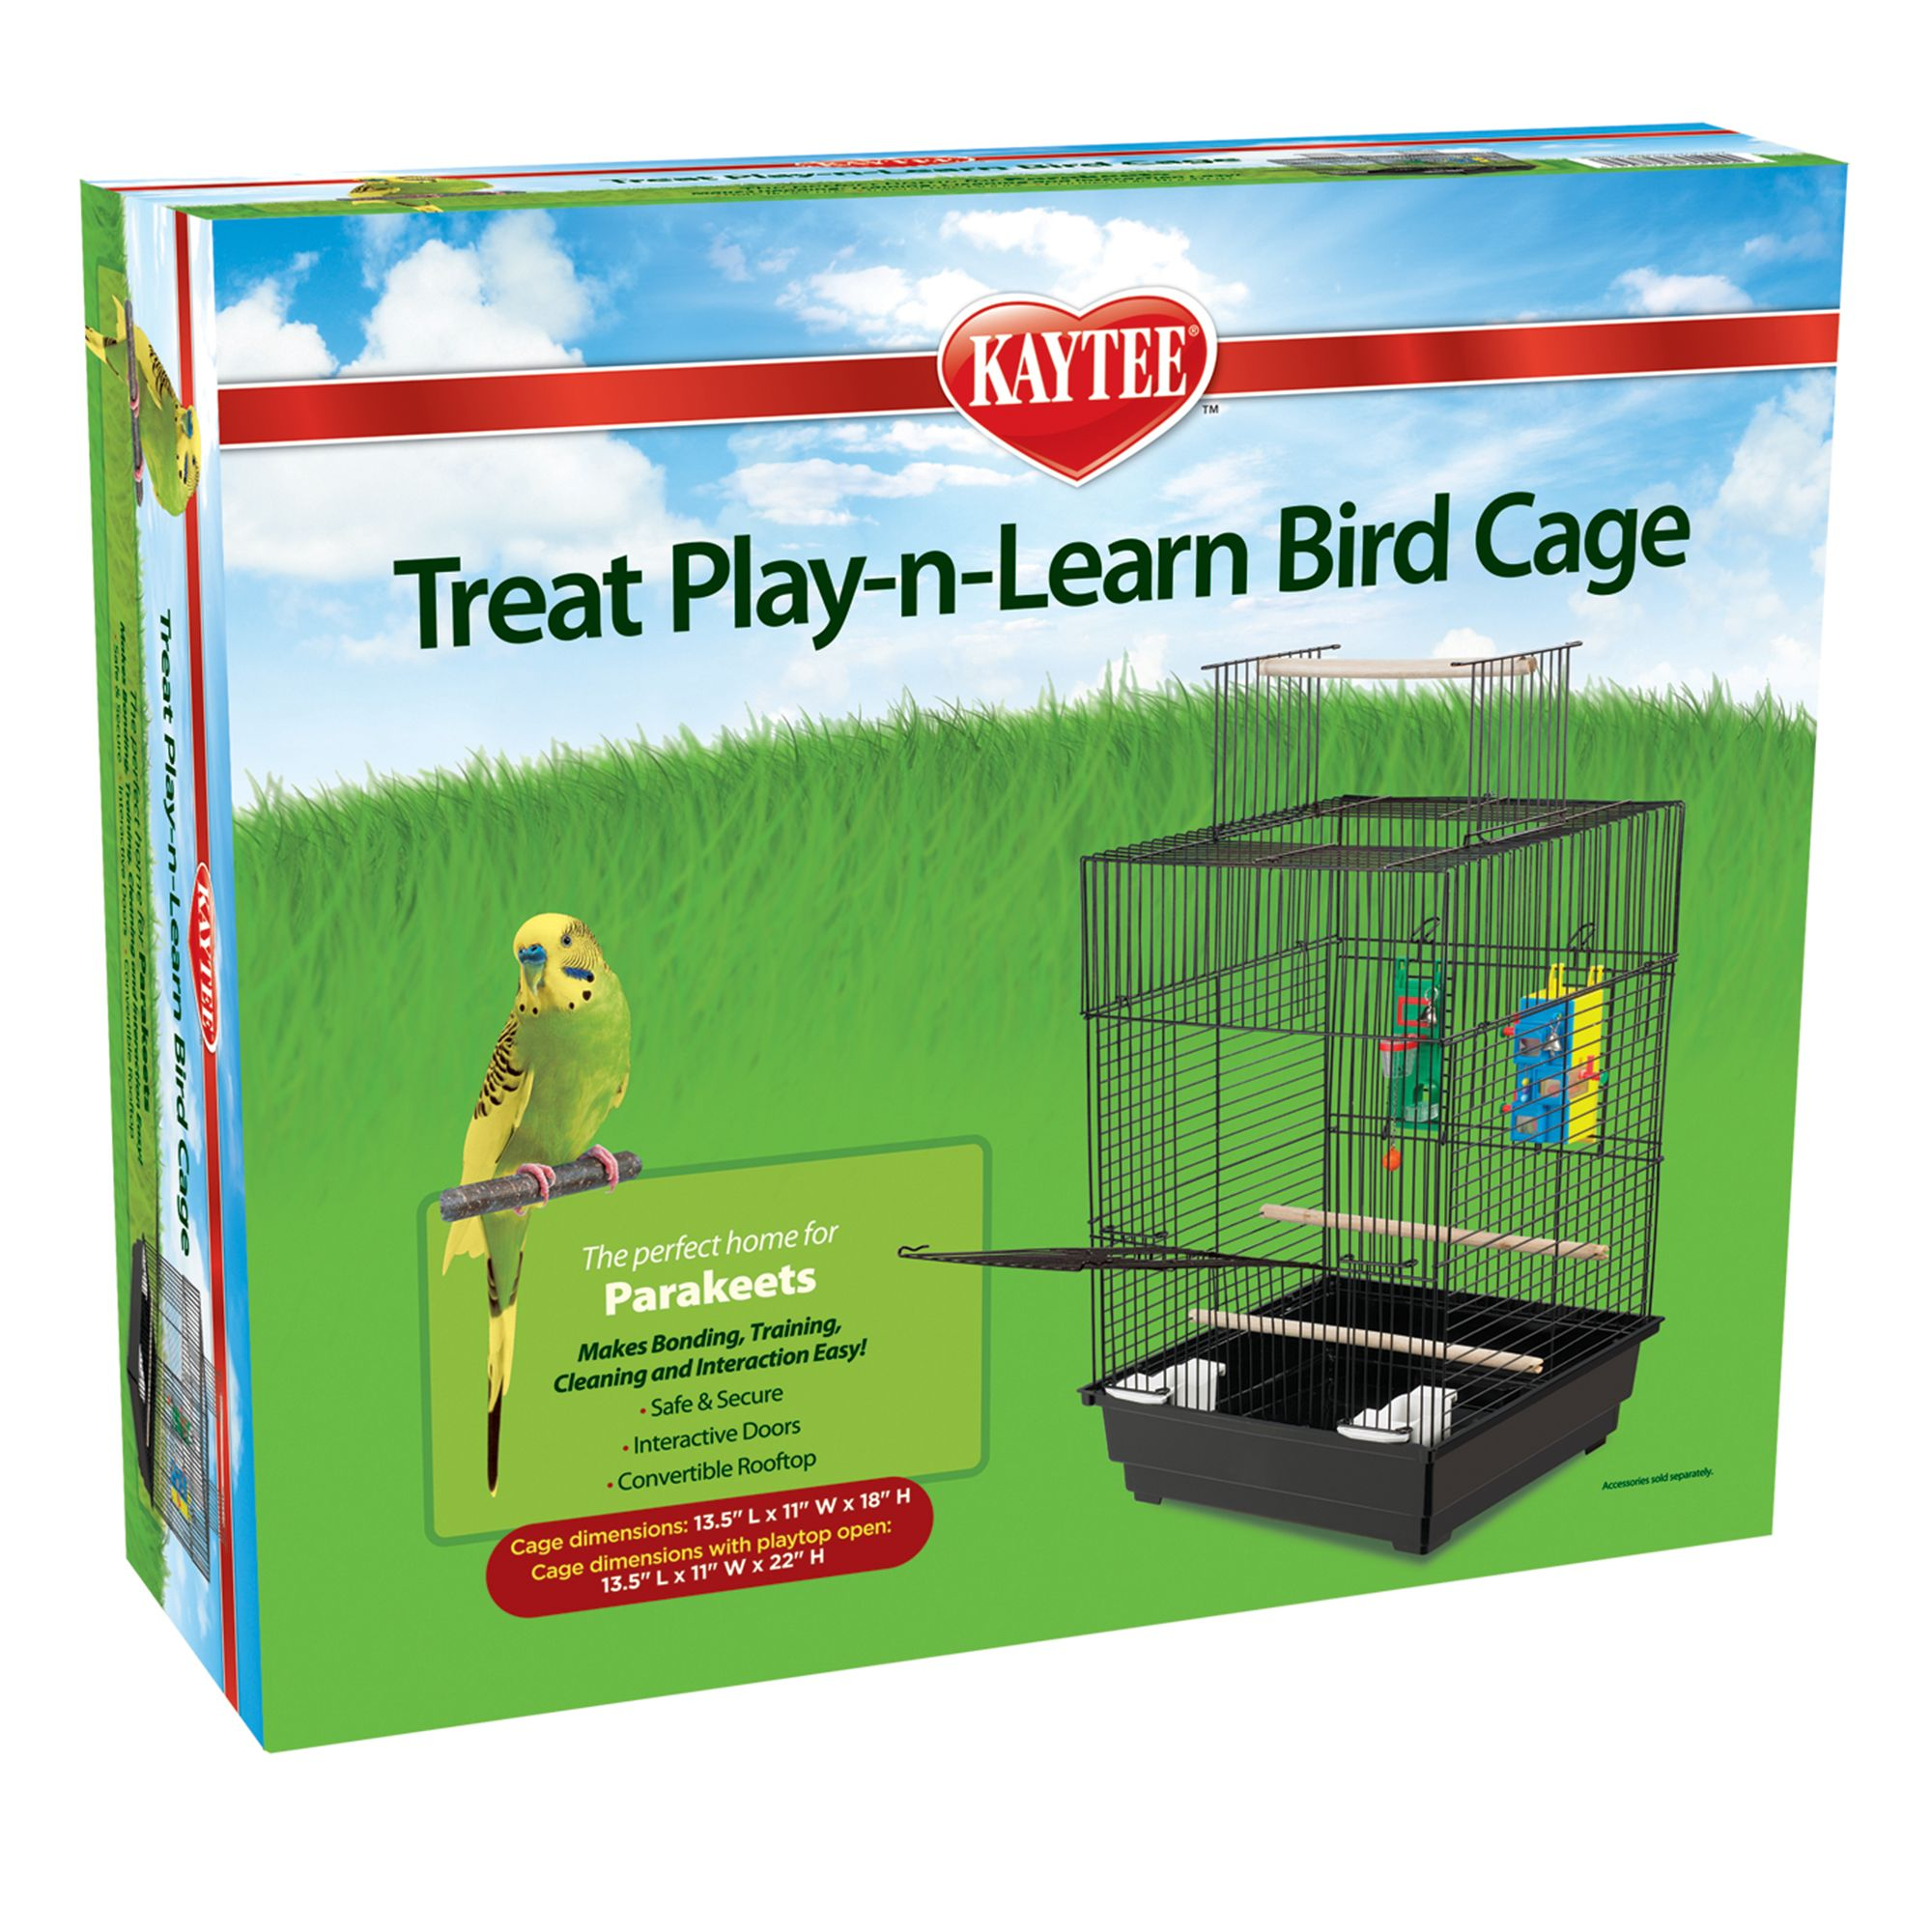 "Kaytee Treat Play-n-Learn Parakeet Cage size: 5.75""L x 20.5""W x 16.5""H, Super Pet 5180251"